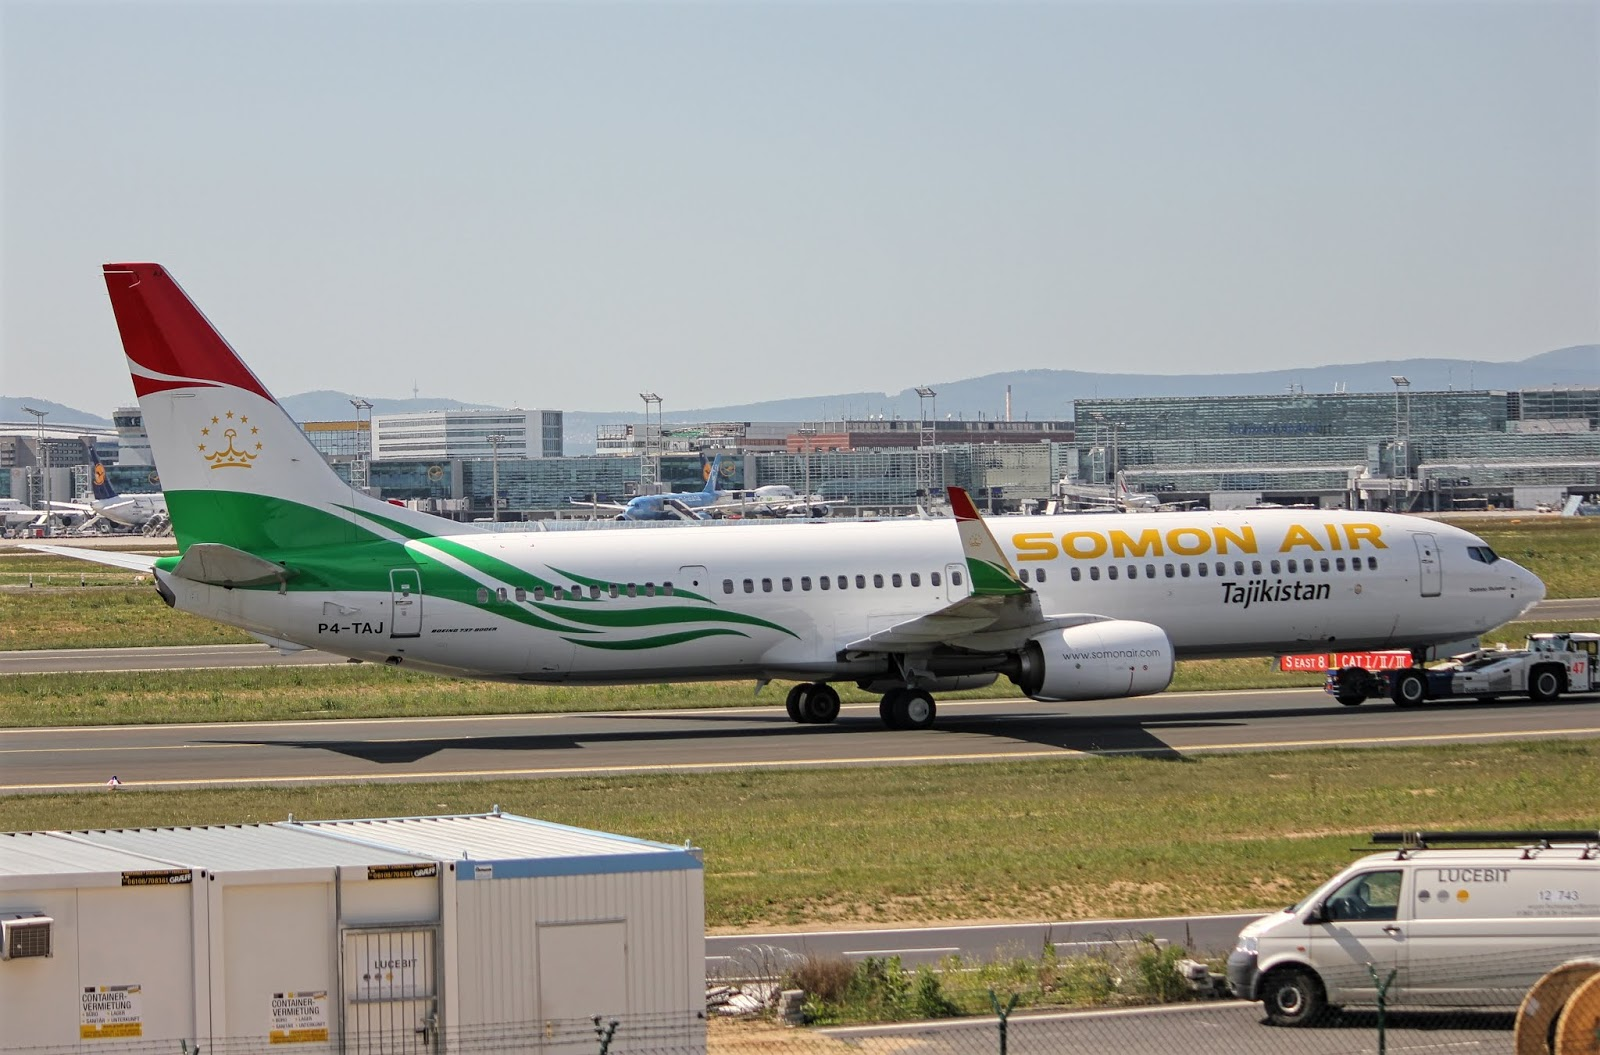 Boeing 737-900ER of Somon Air While Being Towed